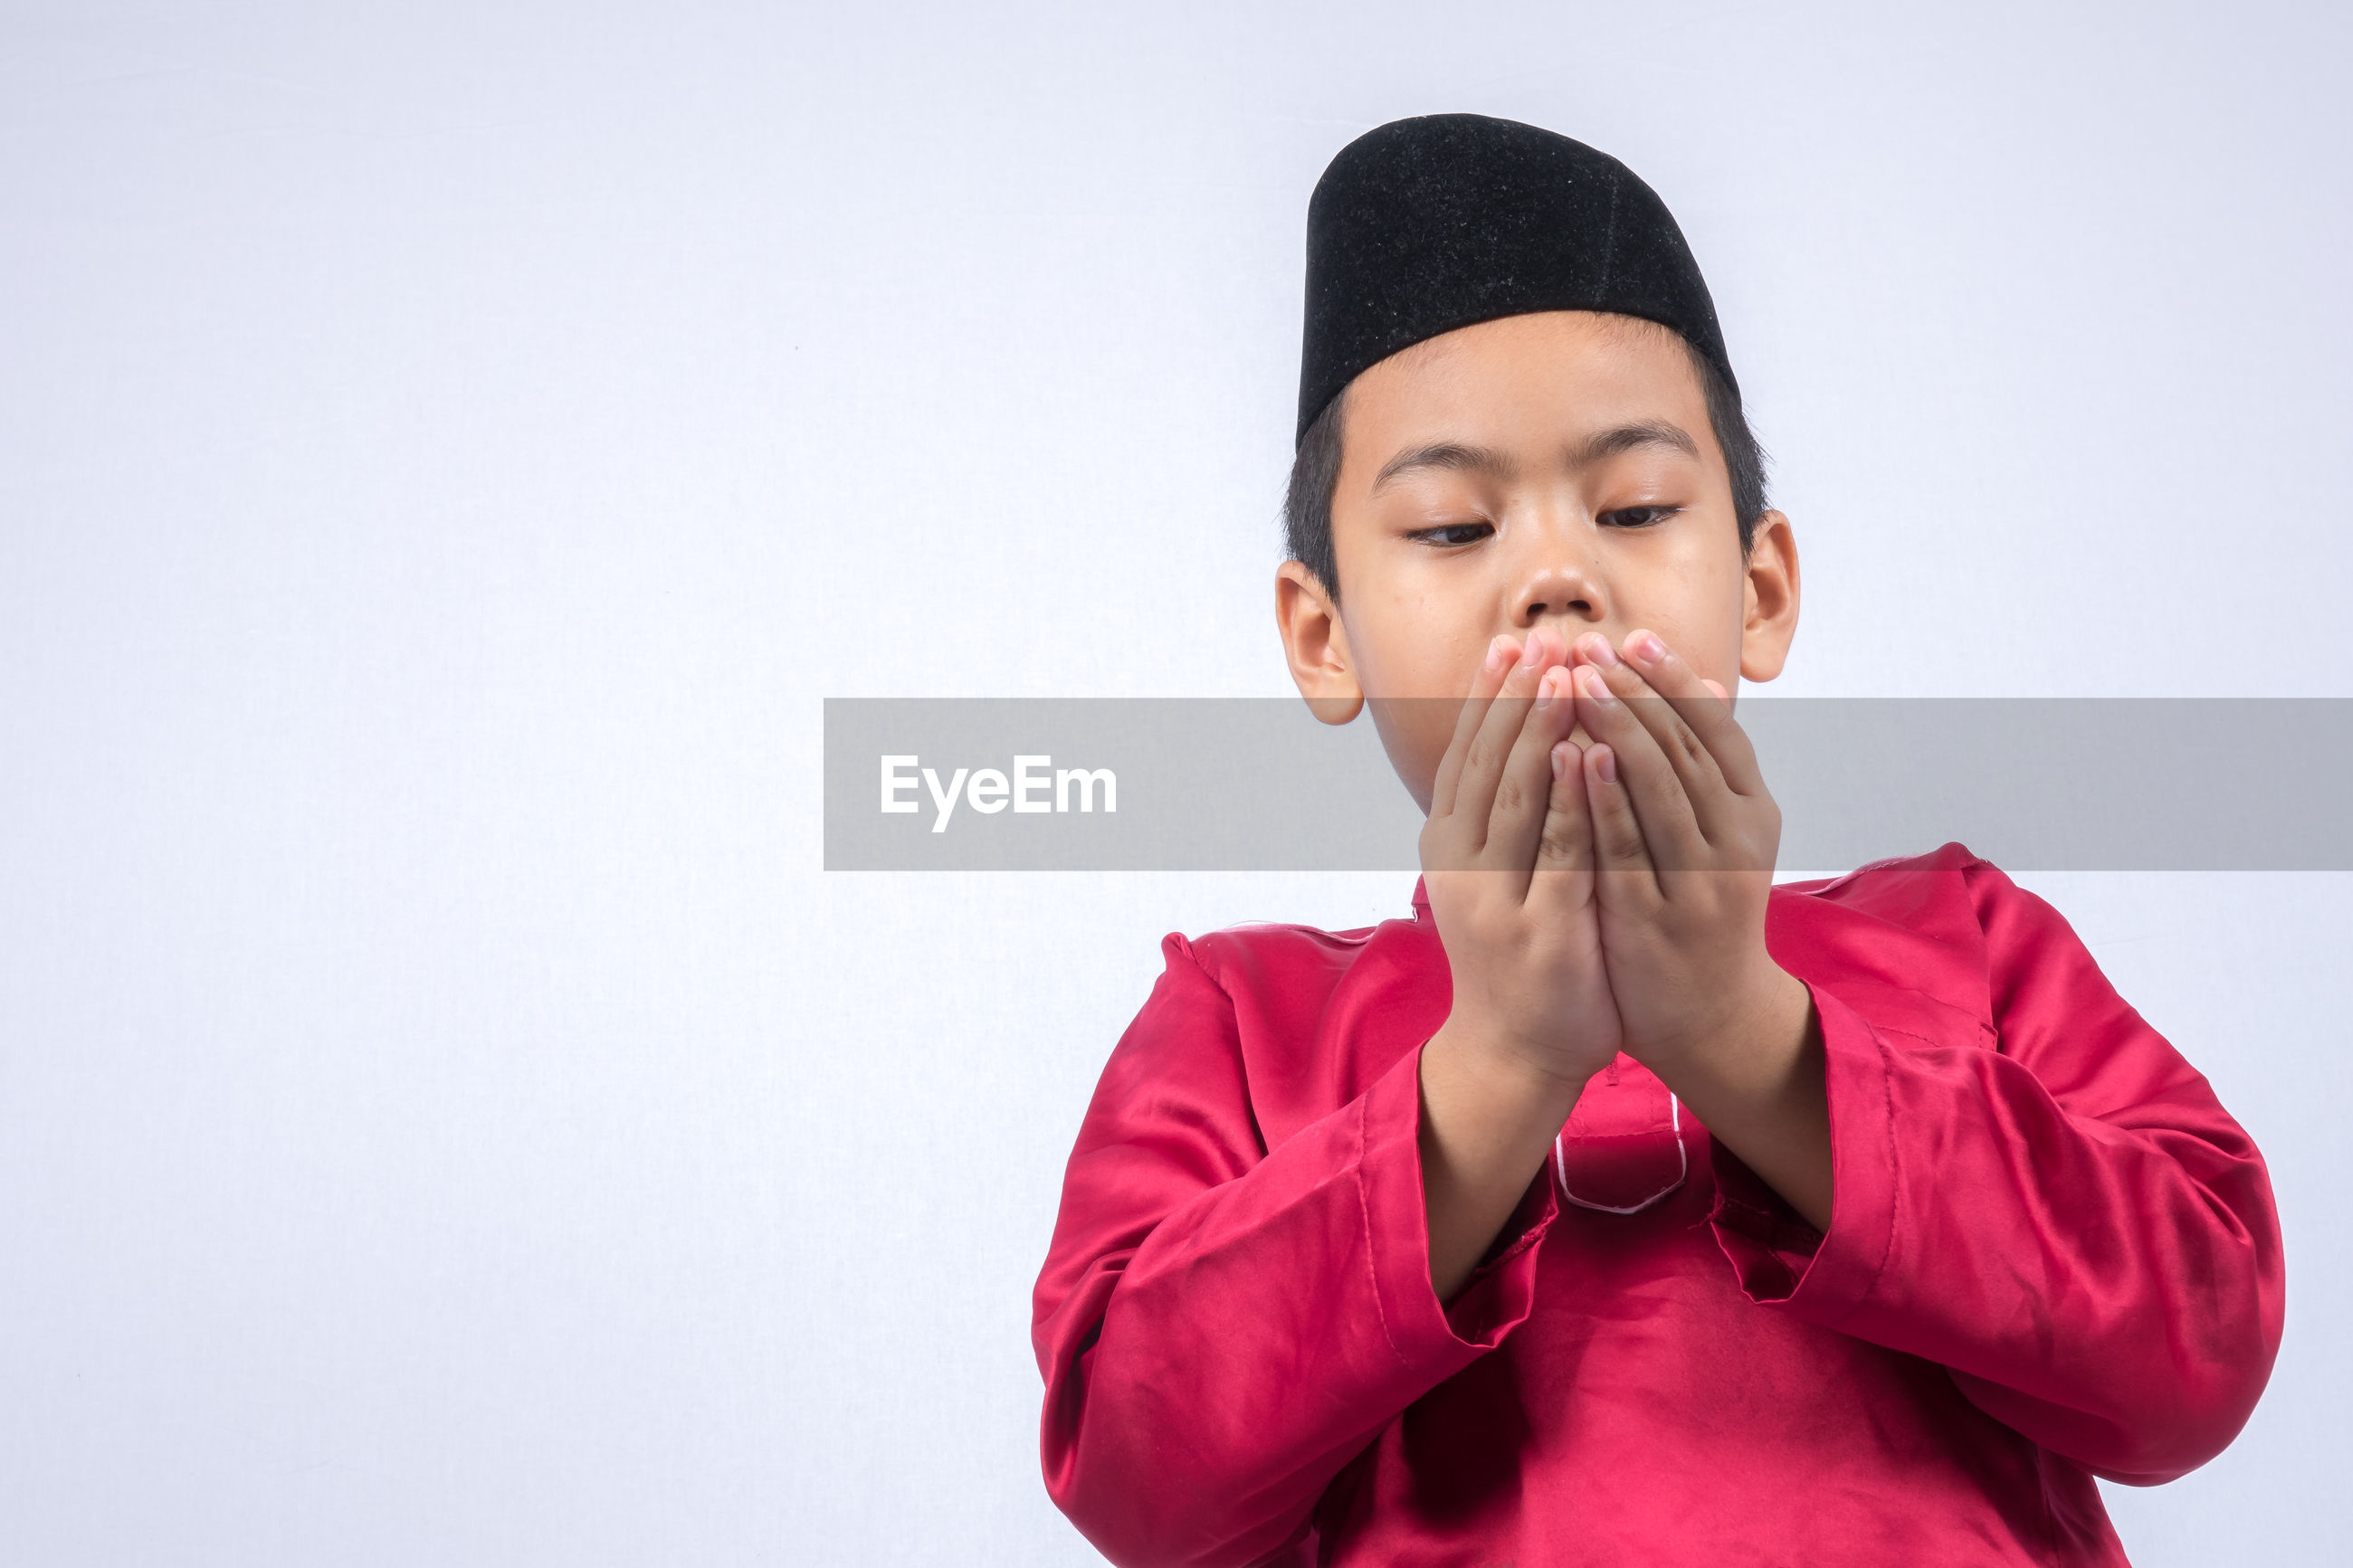 Cute boy wearing maroon traditional clothing standing against white background